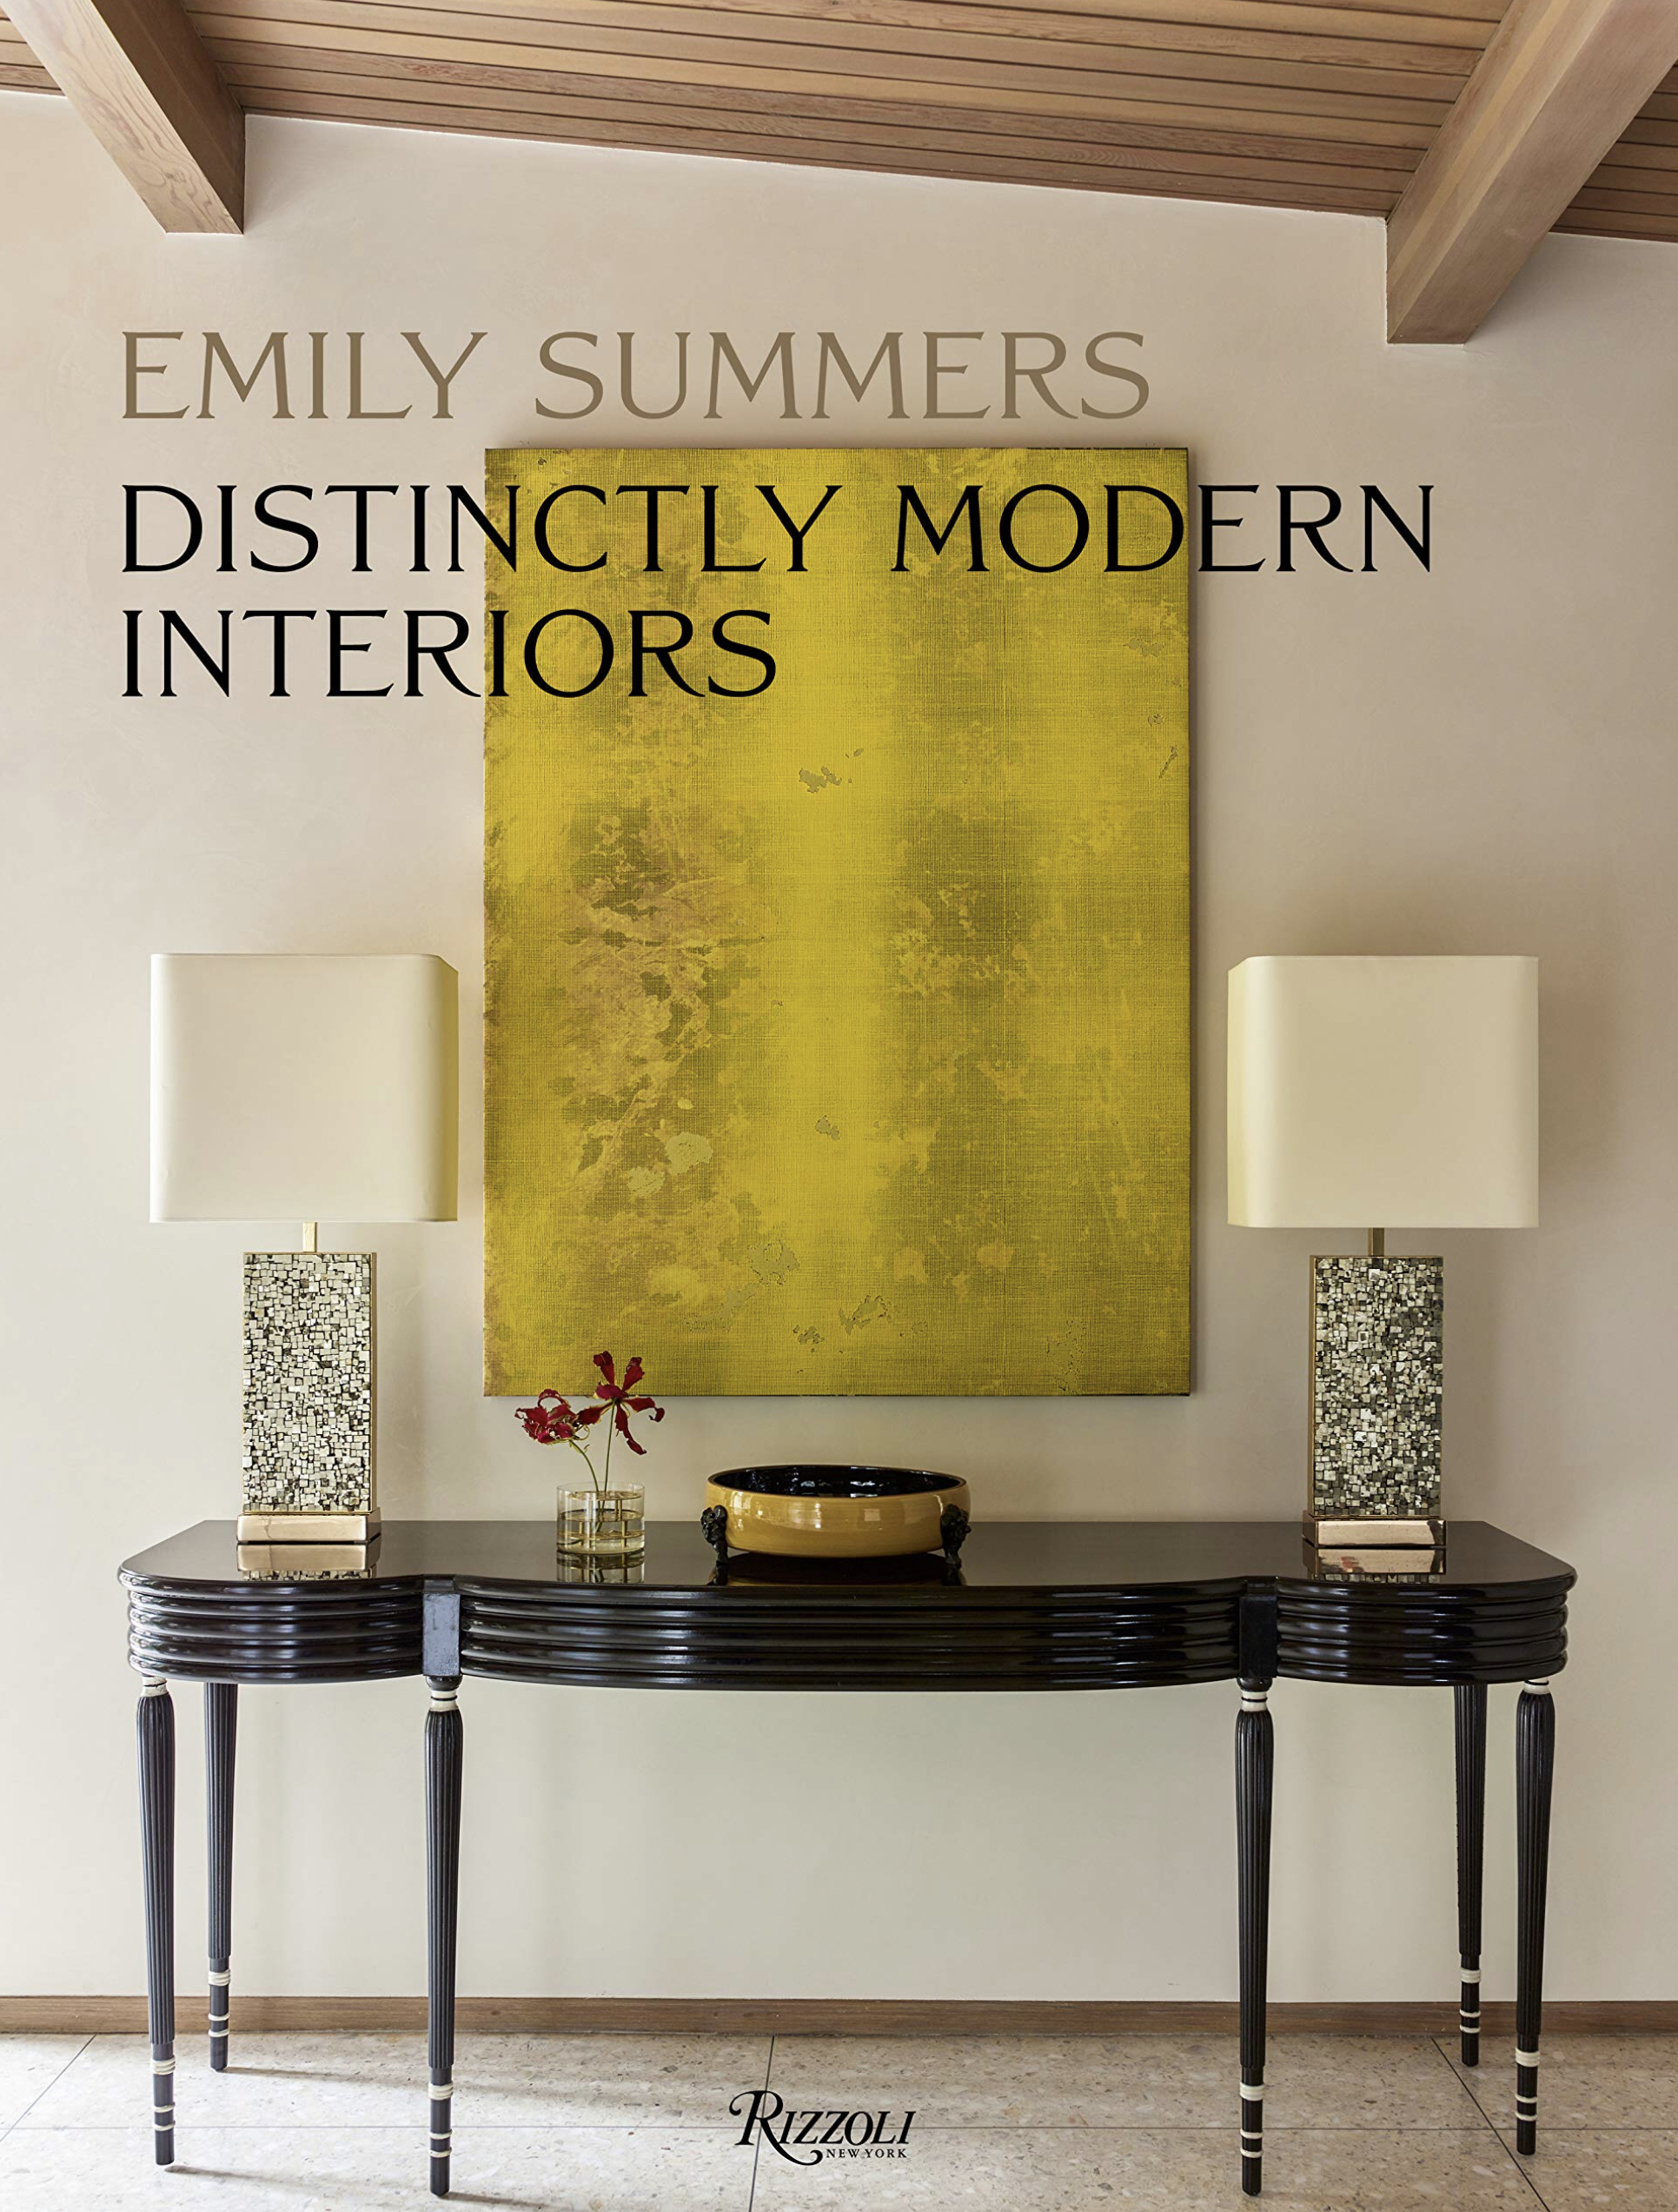 Emily Summers, Distinctly Modern Interiors; Rizzoli.